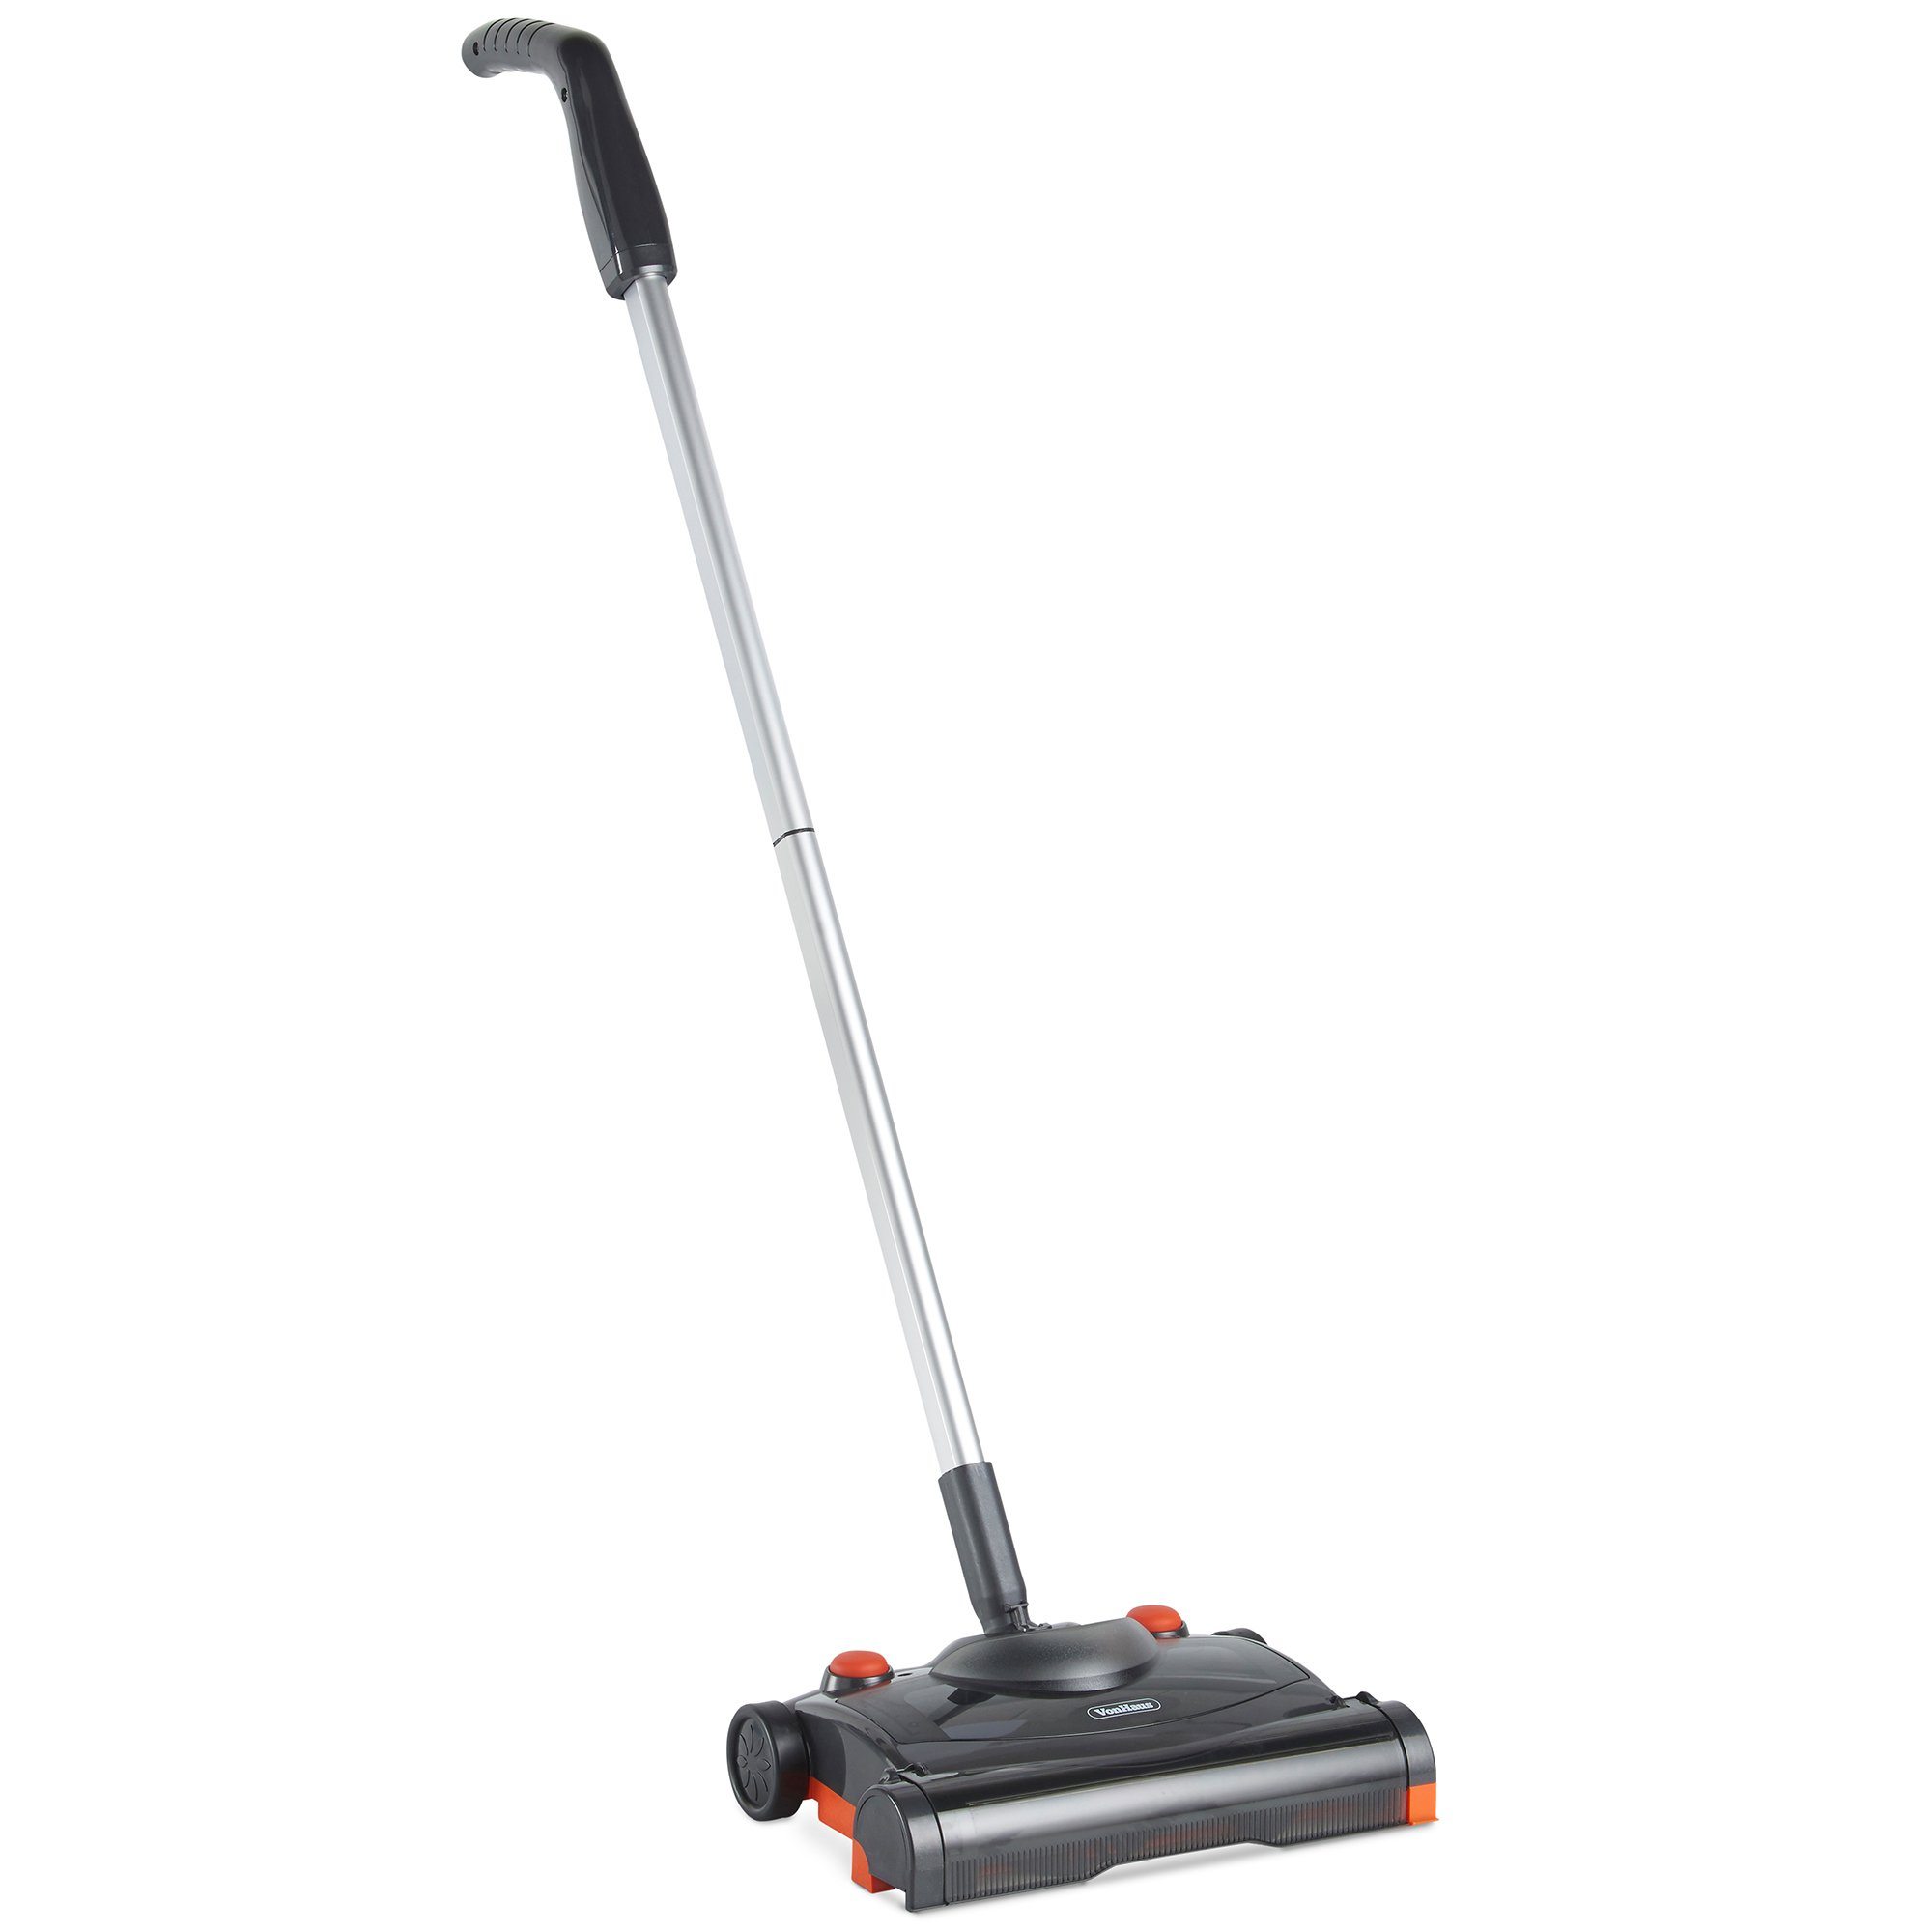 VonHaus Electric Hard Floor Sweeper - Cordless/Wireless Rechargeable Floor Sweeper/Broom with Rapid-Rotation Brush Head – Lightweight, Upright Cleaner for Carpet and Hardwood Floors